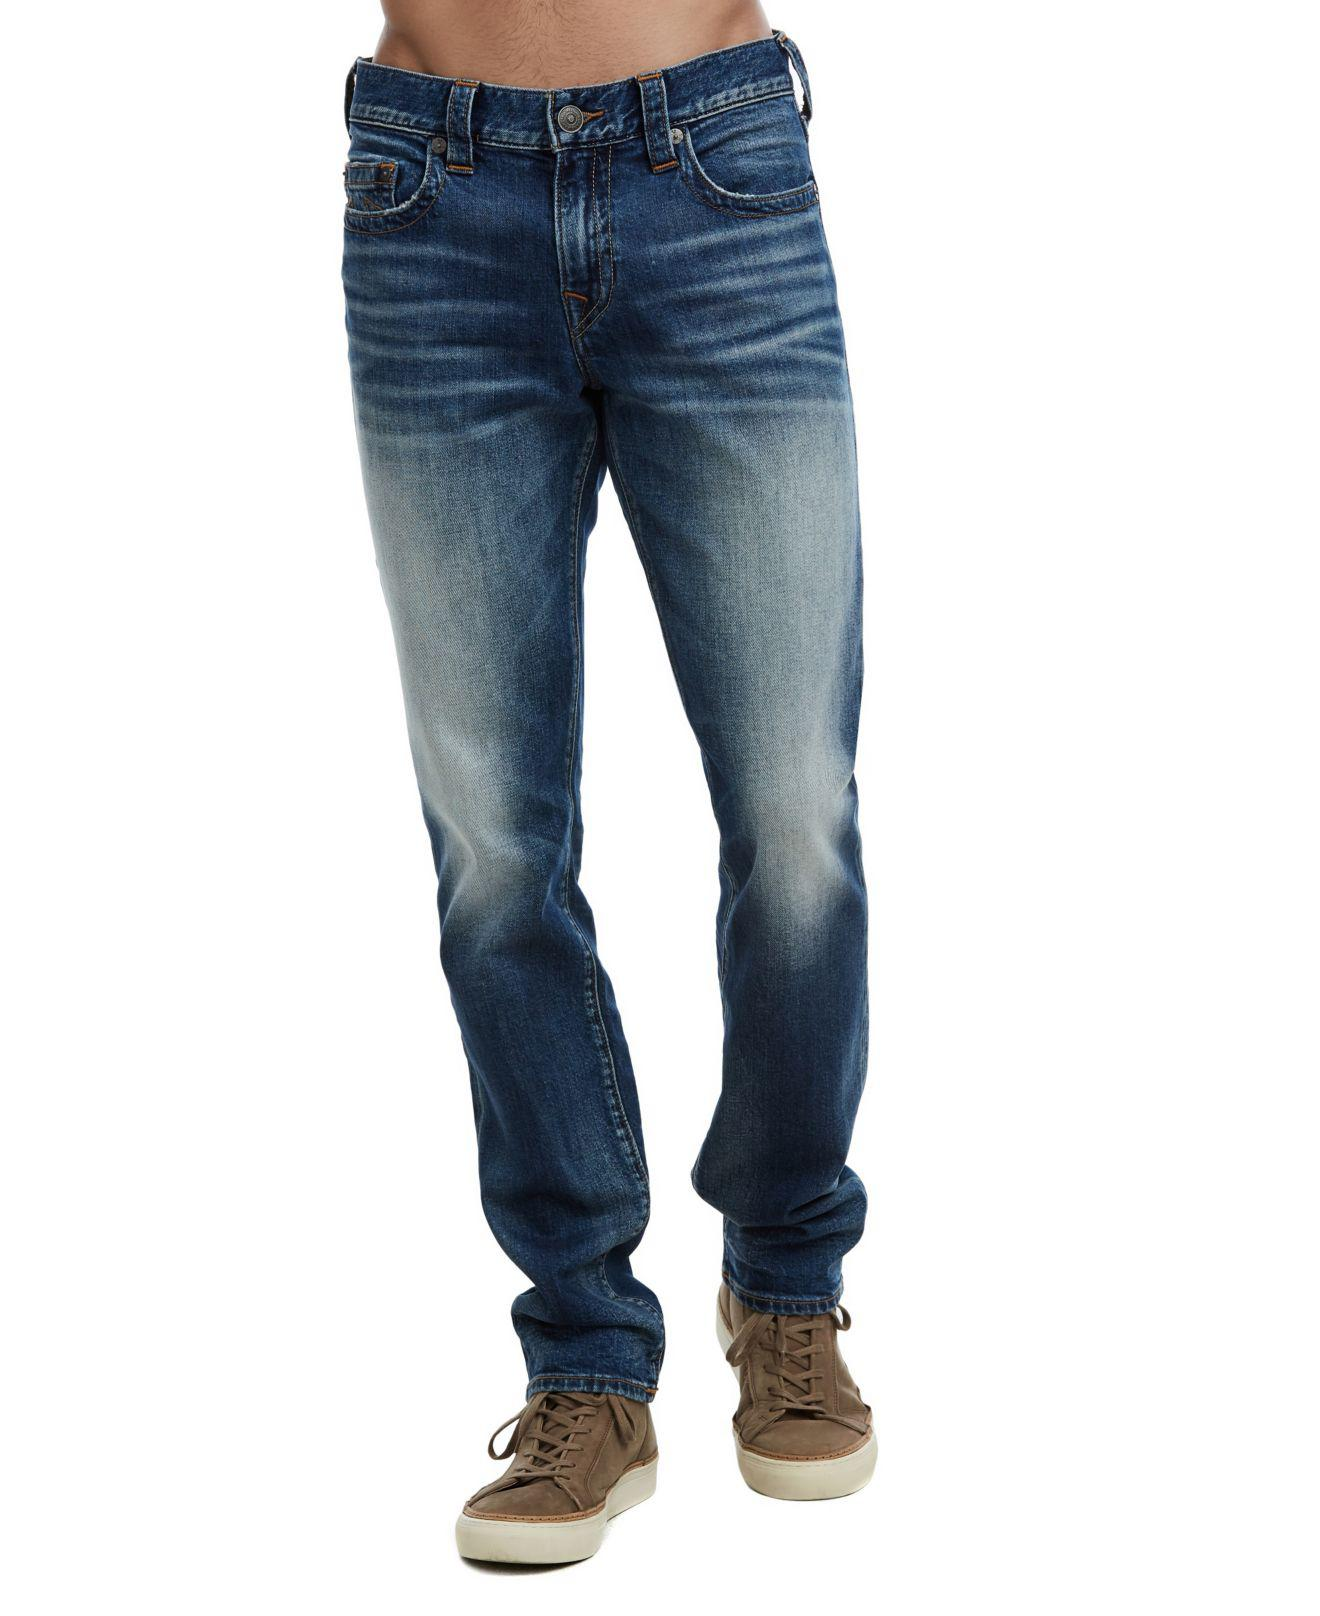 a947007eb Lyst - True Religion Geno No Flap Jeans in Blue for Men